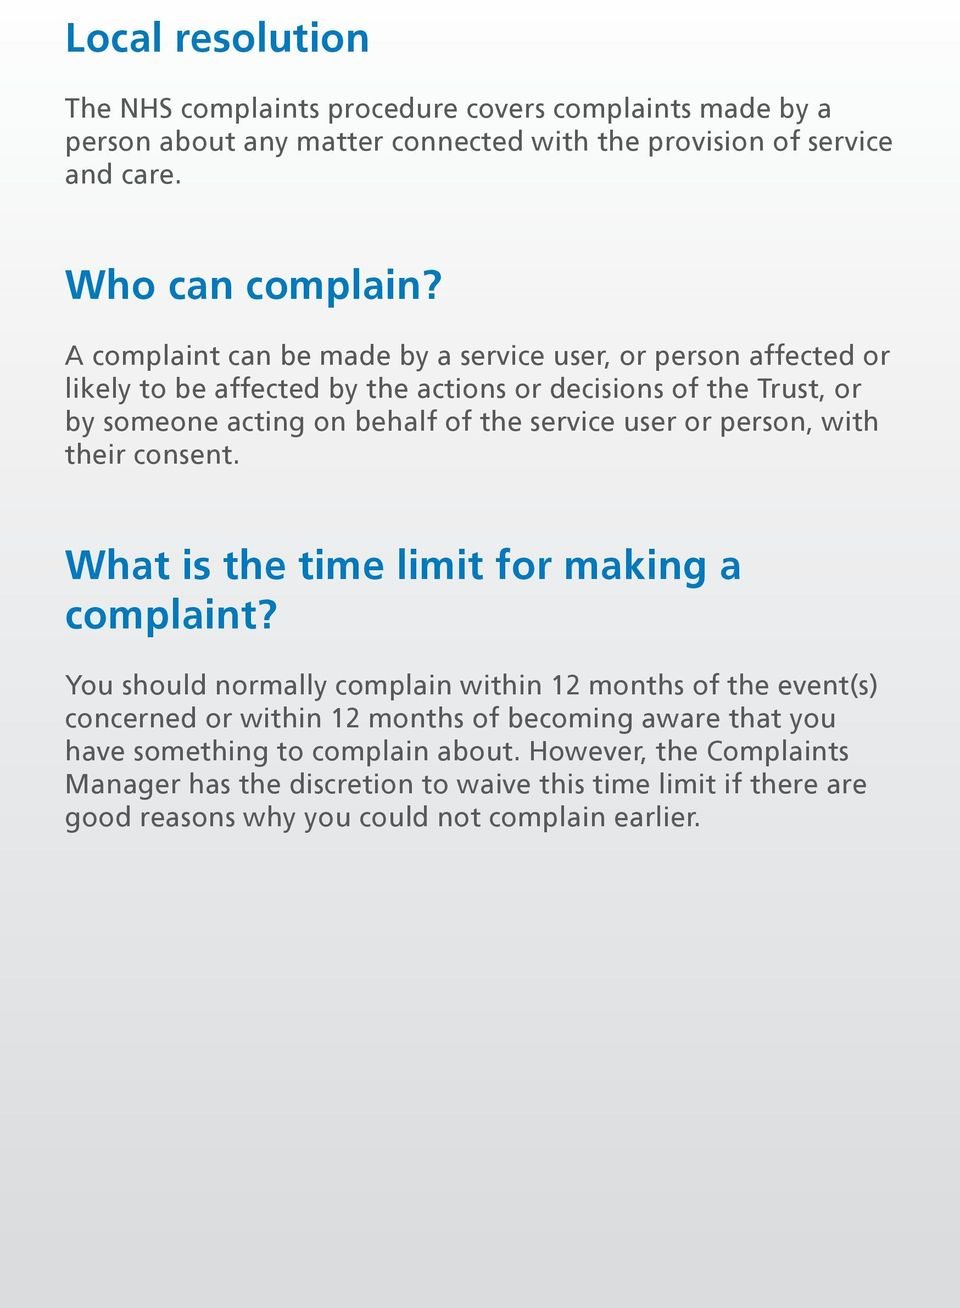 user or person, with their consent. What is the time limit for making a complaint?